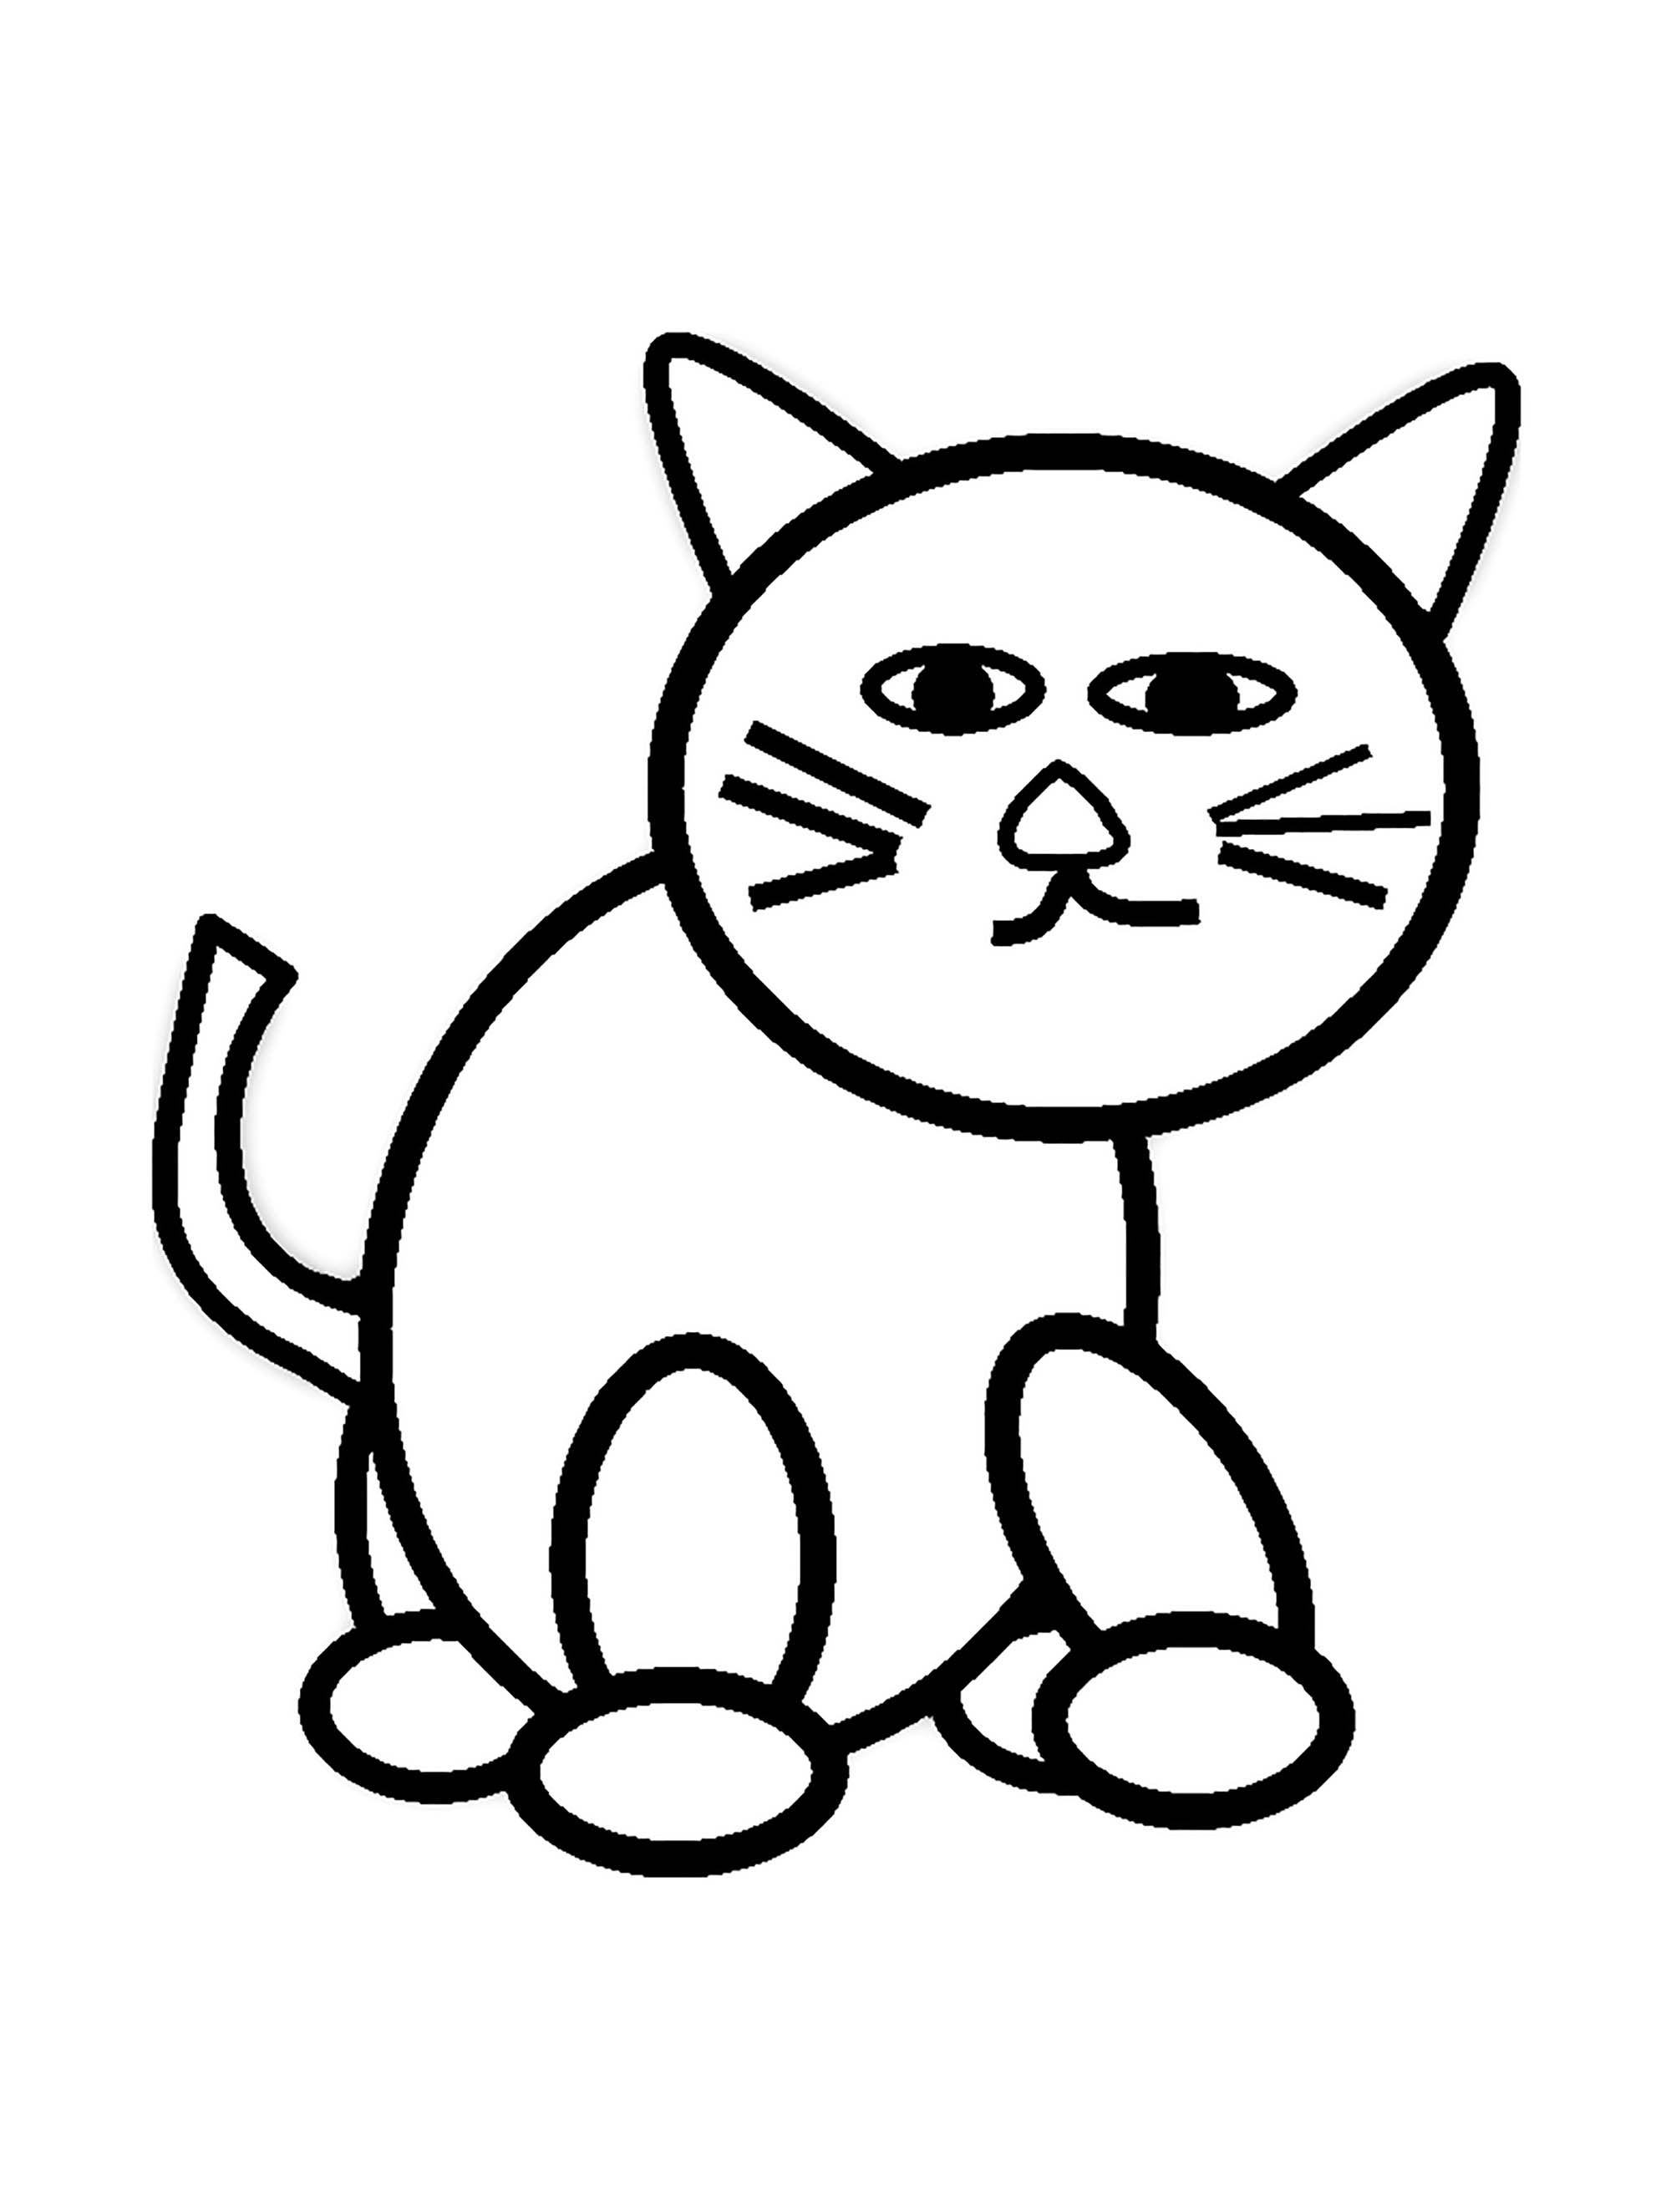 pictures of cats and kittens to color cat coloring pages coloringrocks of to kittens color cats and pictures